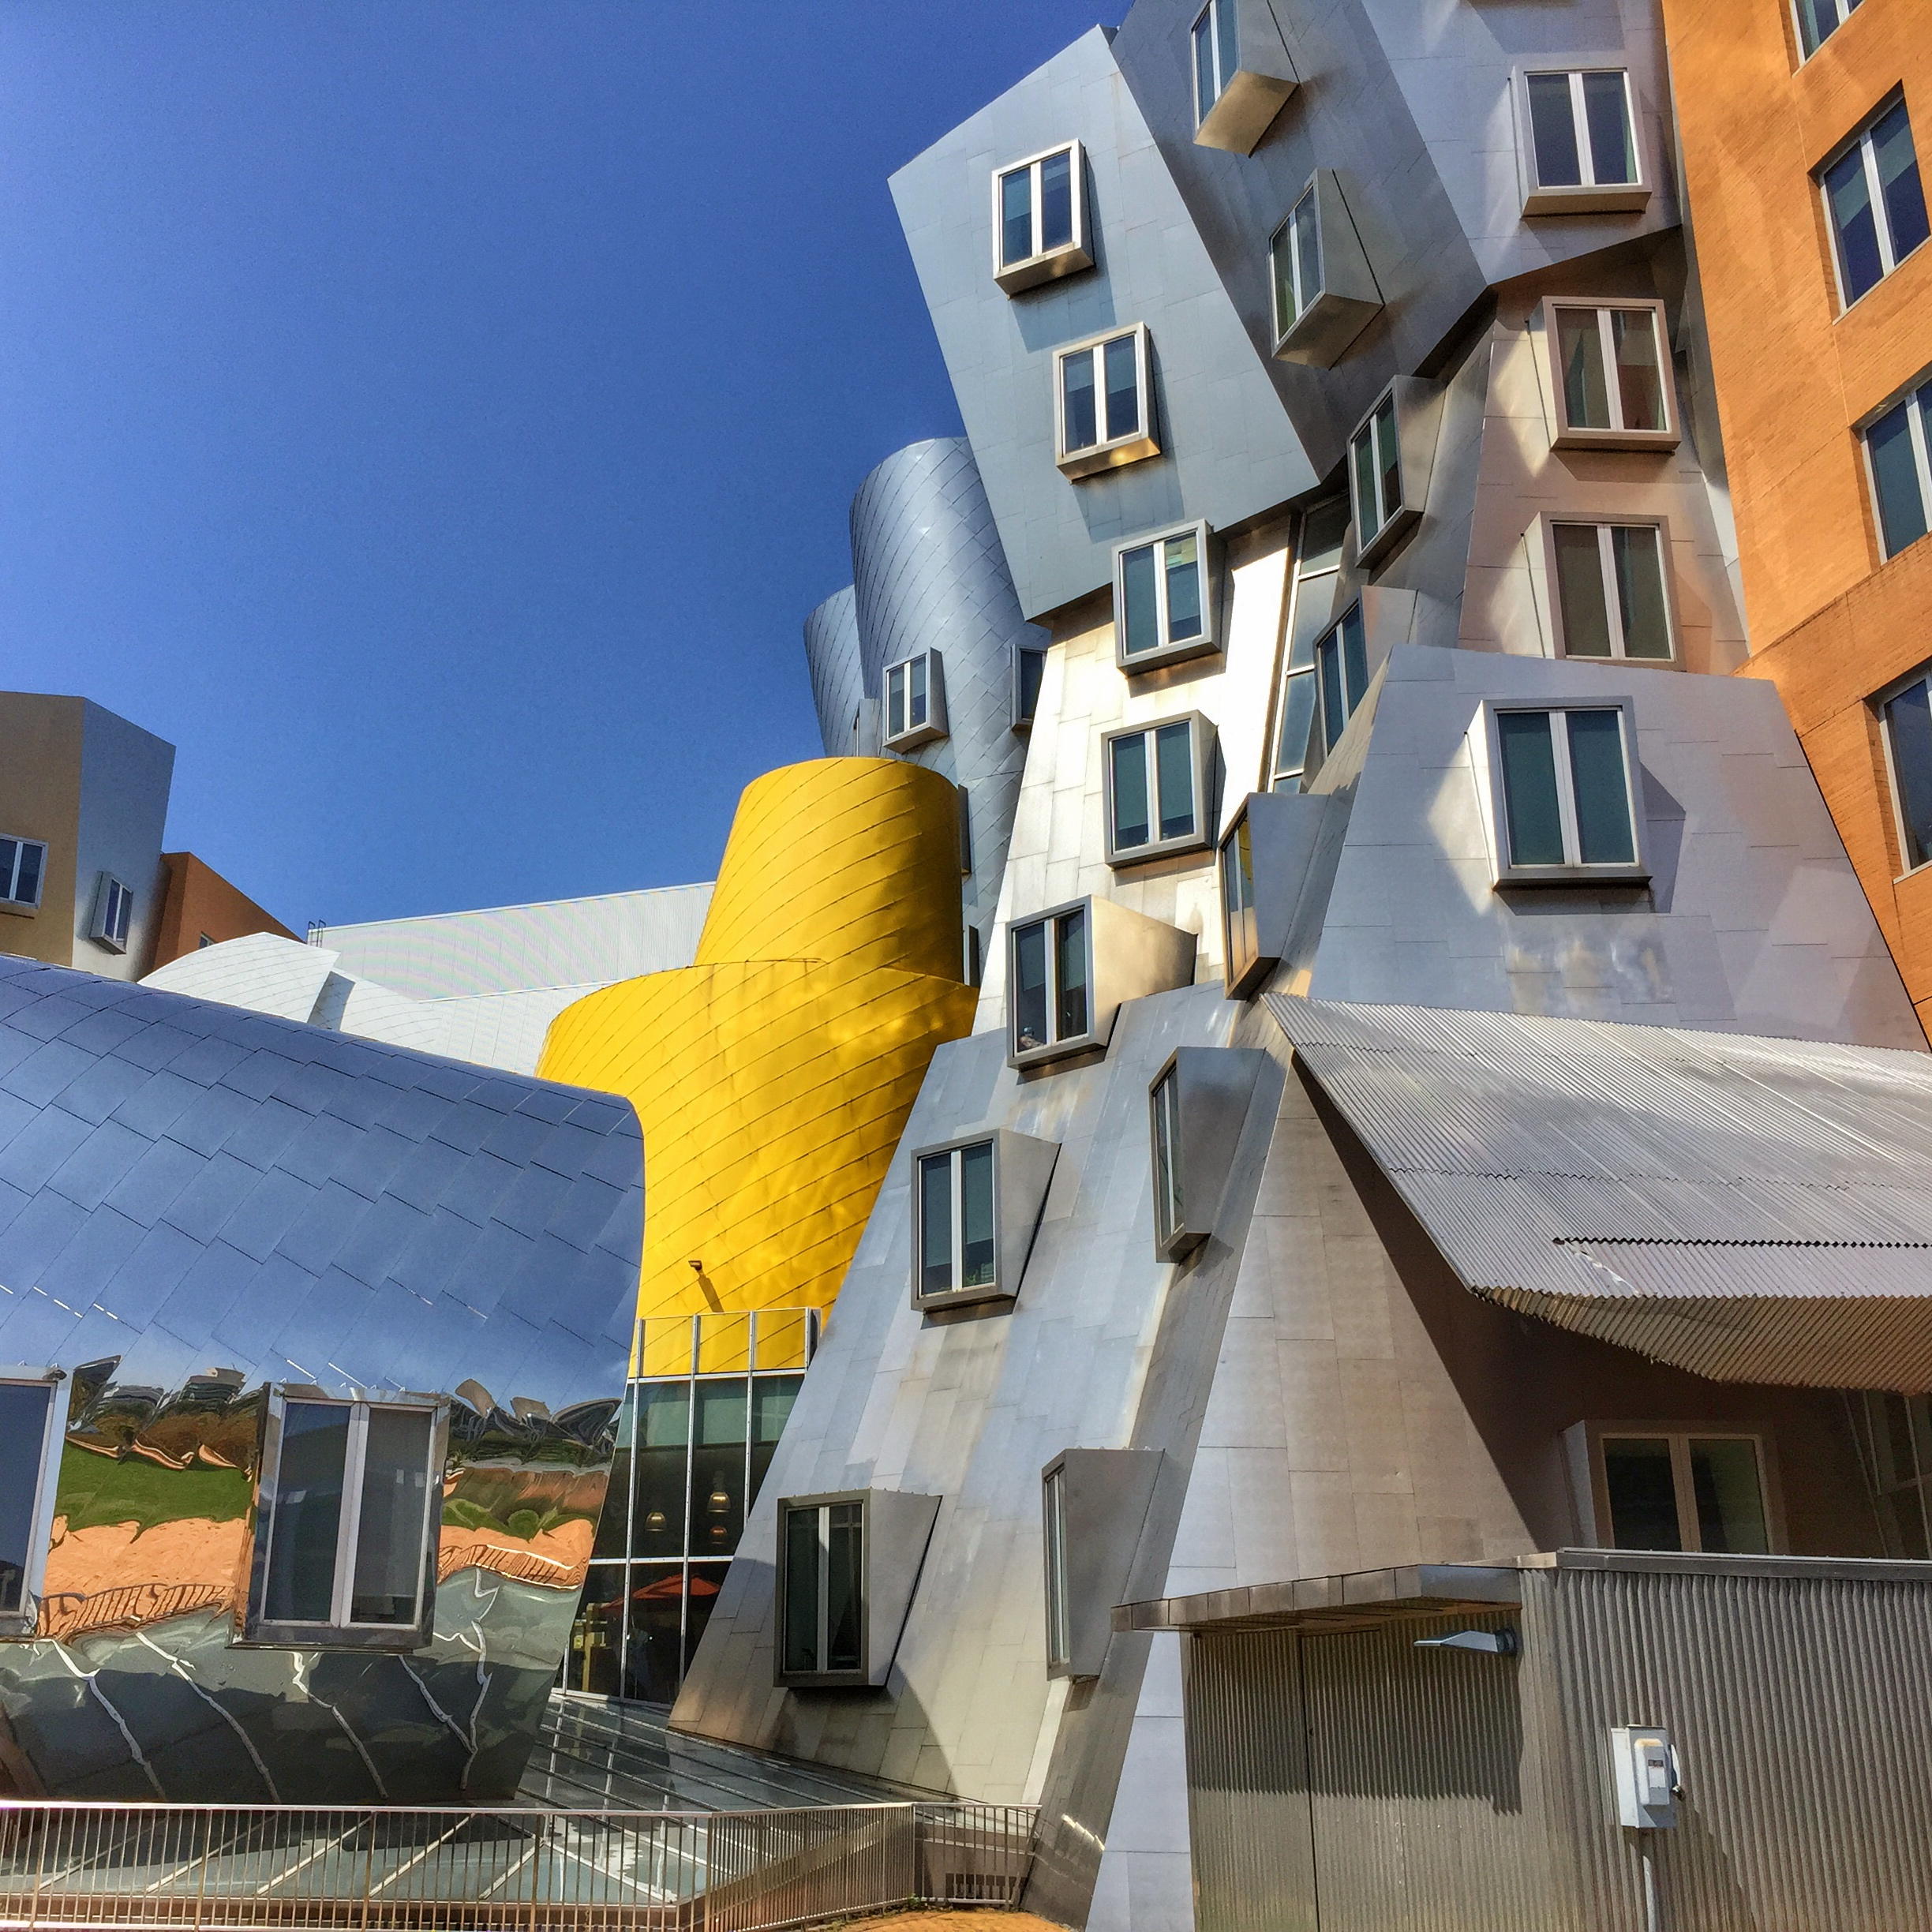 Frank Gehry's whimsical stata center at MIT.